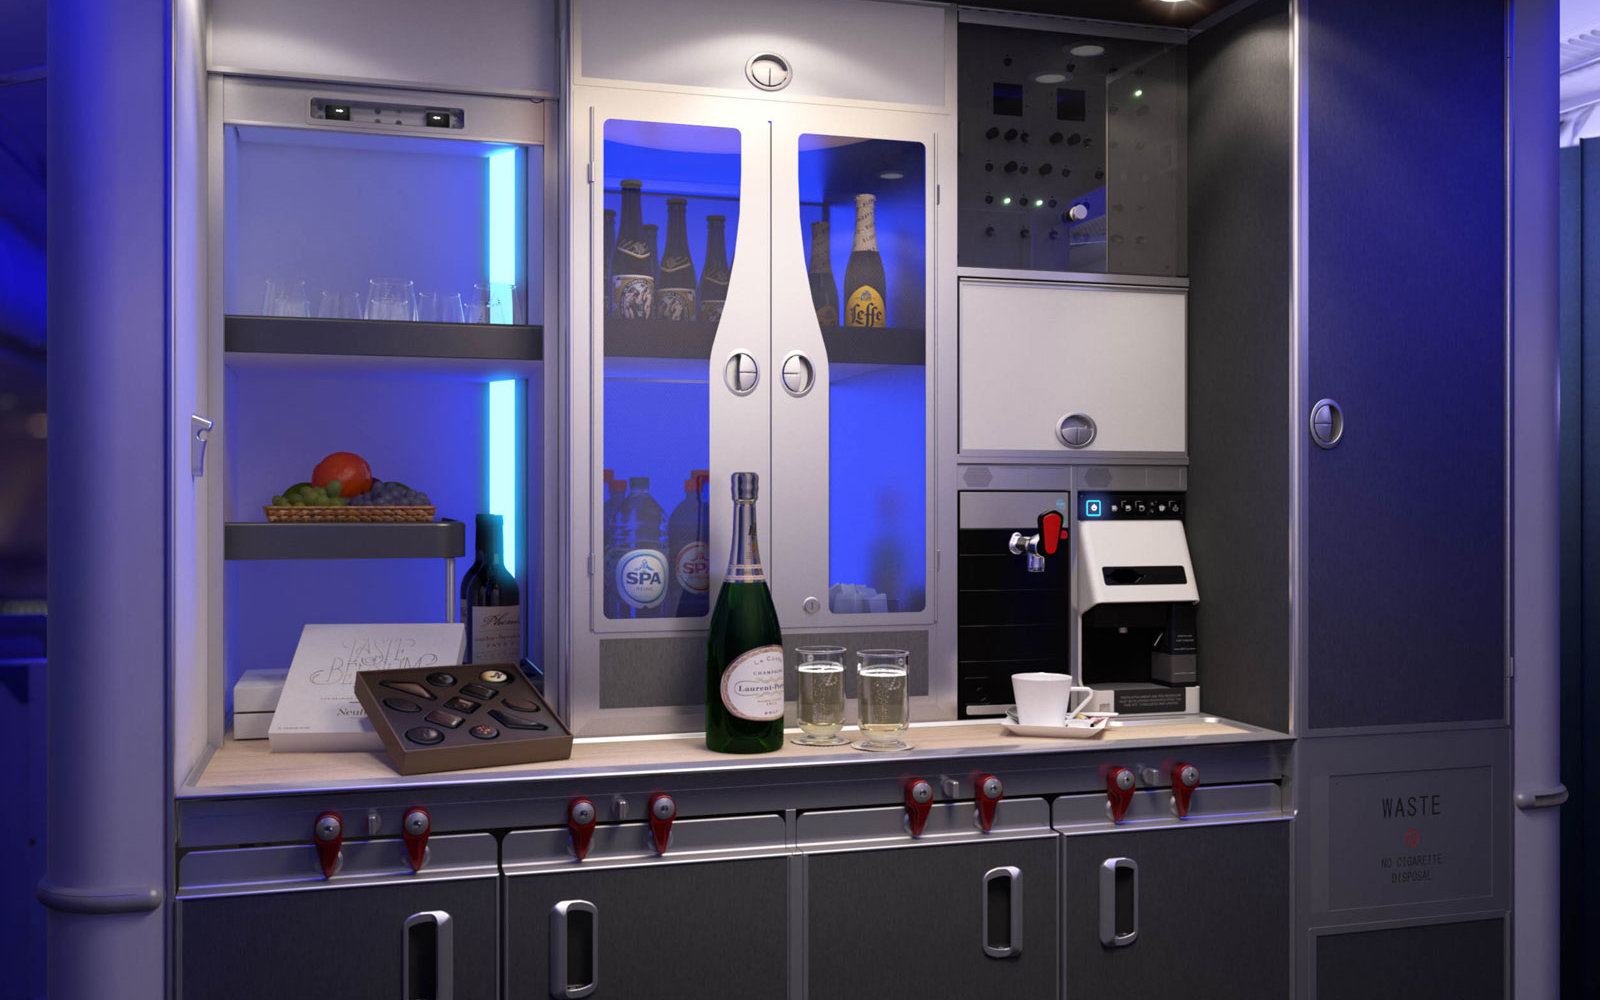 This Airline Is Adding a Self-serve Beer Bar to Business Class